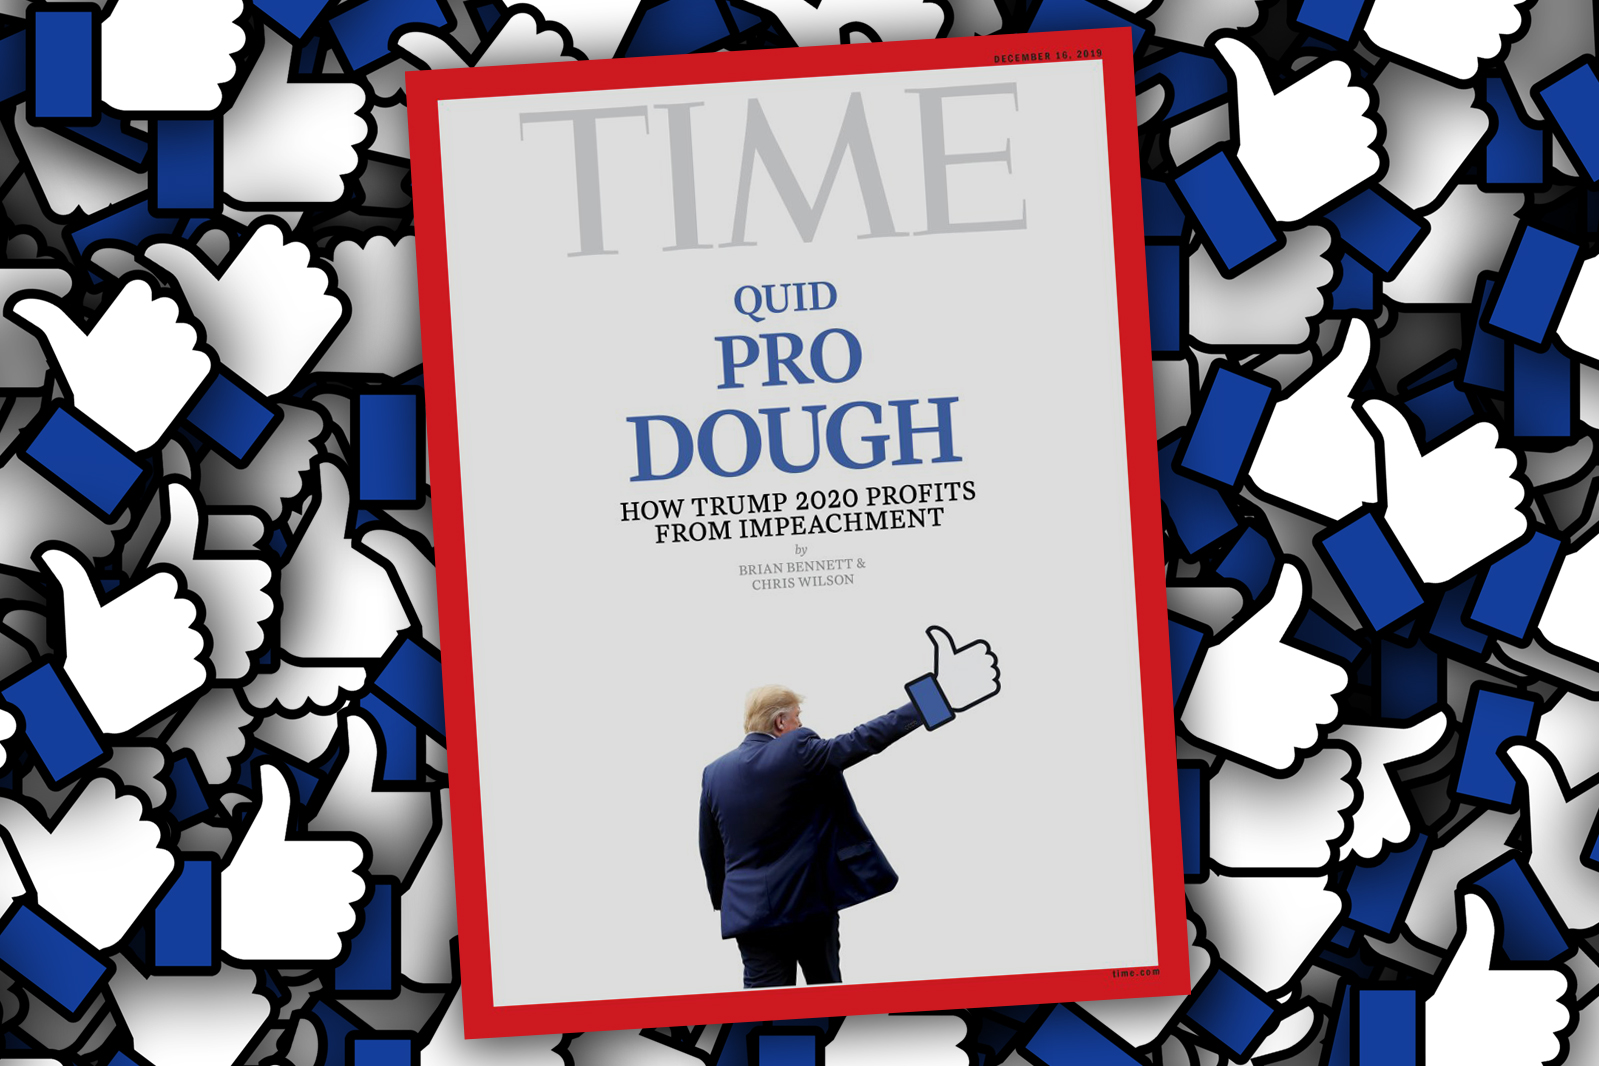 Trump gets a Facebook thumbs-up hand graft on Time's latest cover